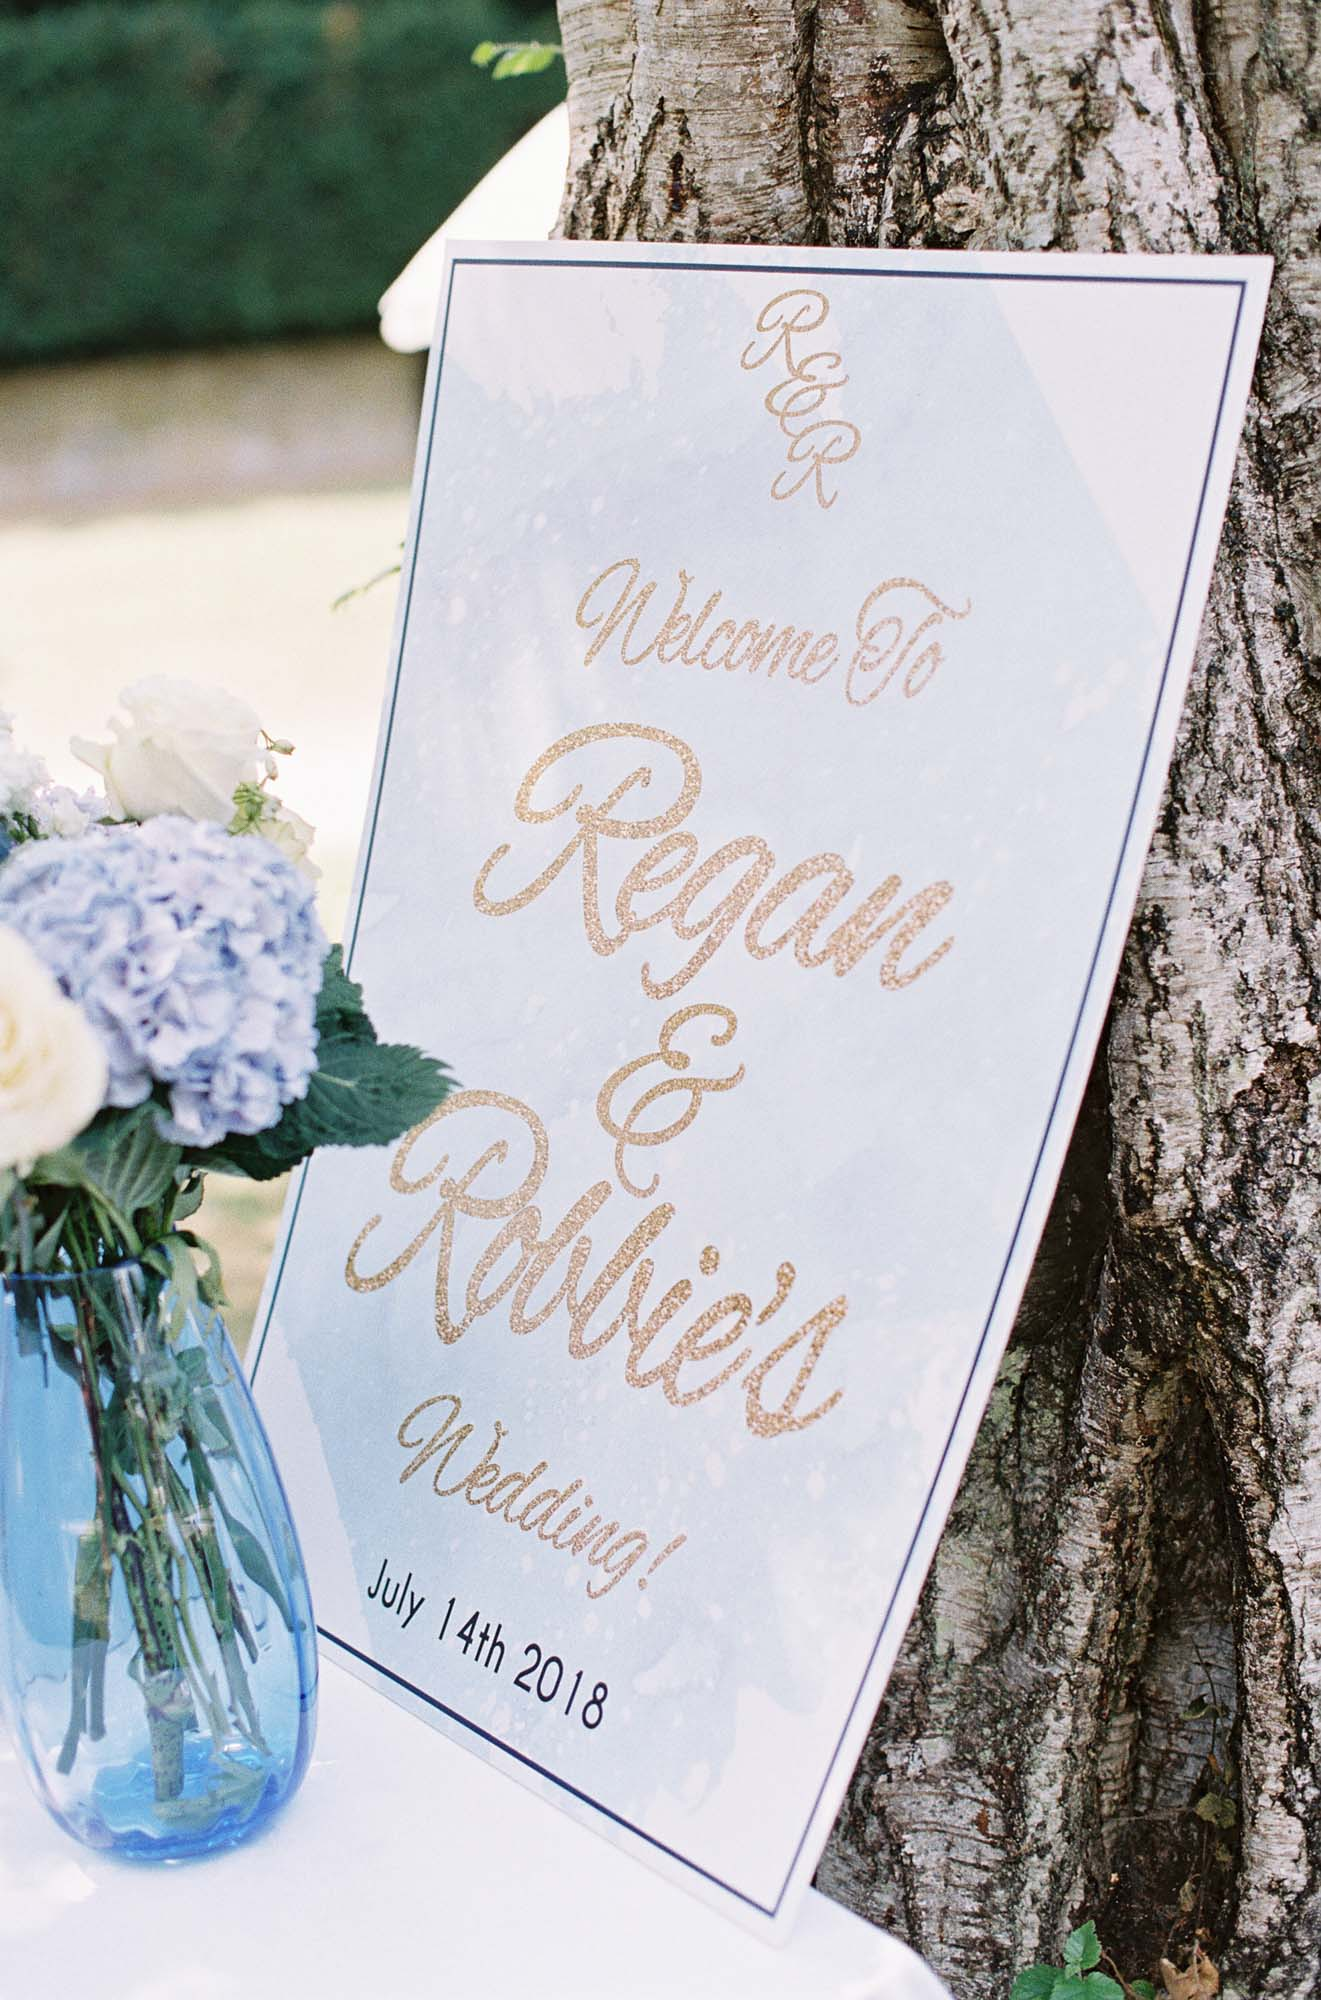 Welcome sign at Chiddingstone Castle wedding